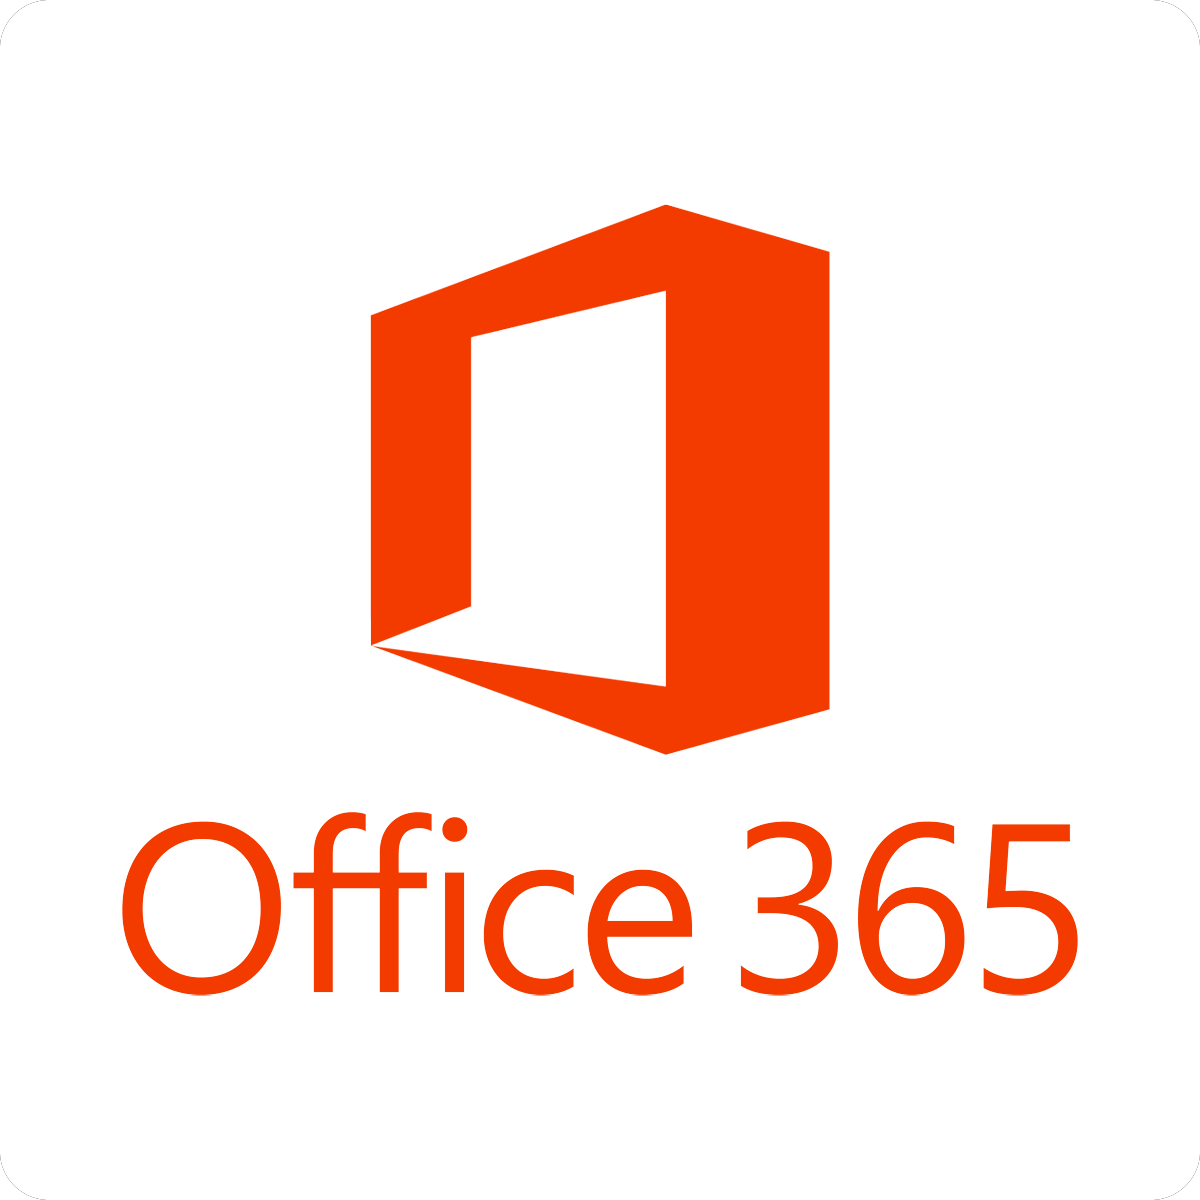 Microsoft Office 365 Product Key Generator + Activation Key Full Crack